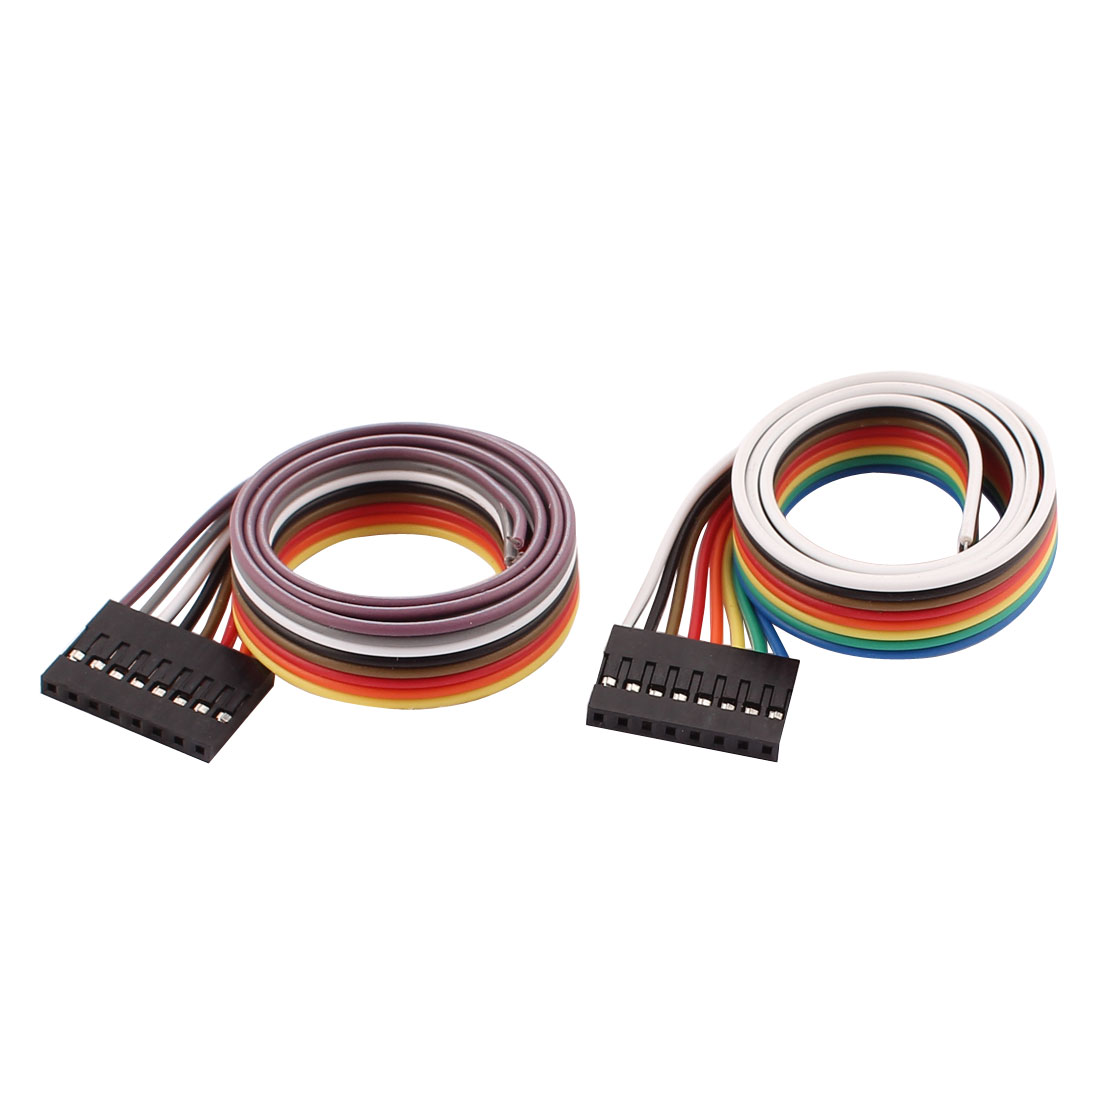 2Pcs Female 8P Jumper Wires Ribbon Cables Pi Pic Breadboard DIY 40cm Long